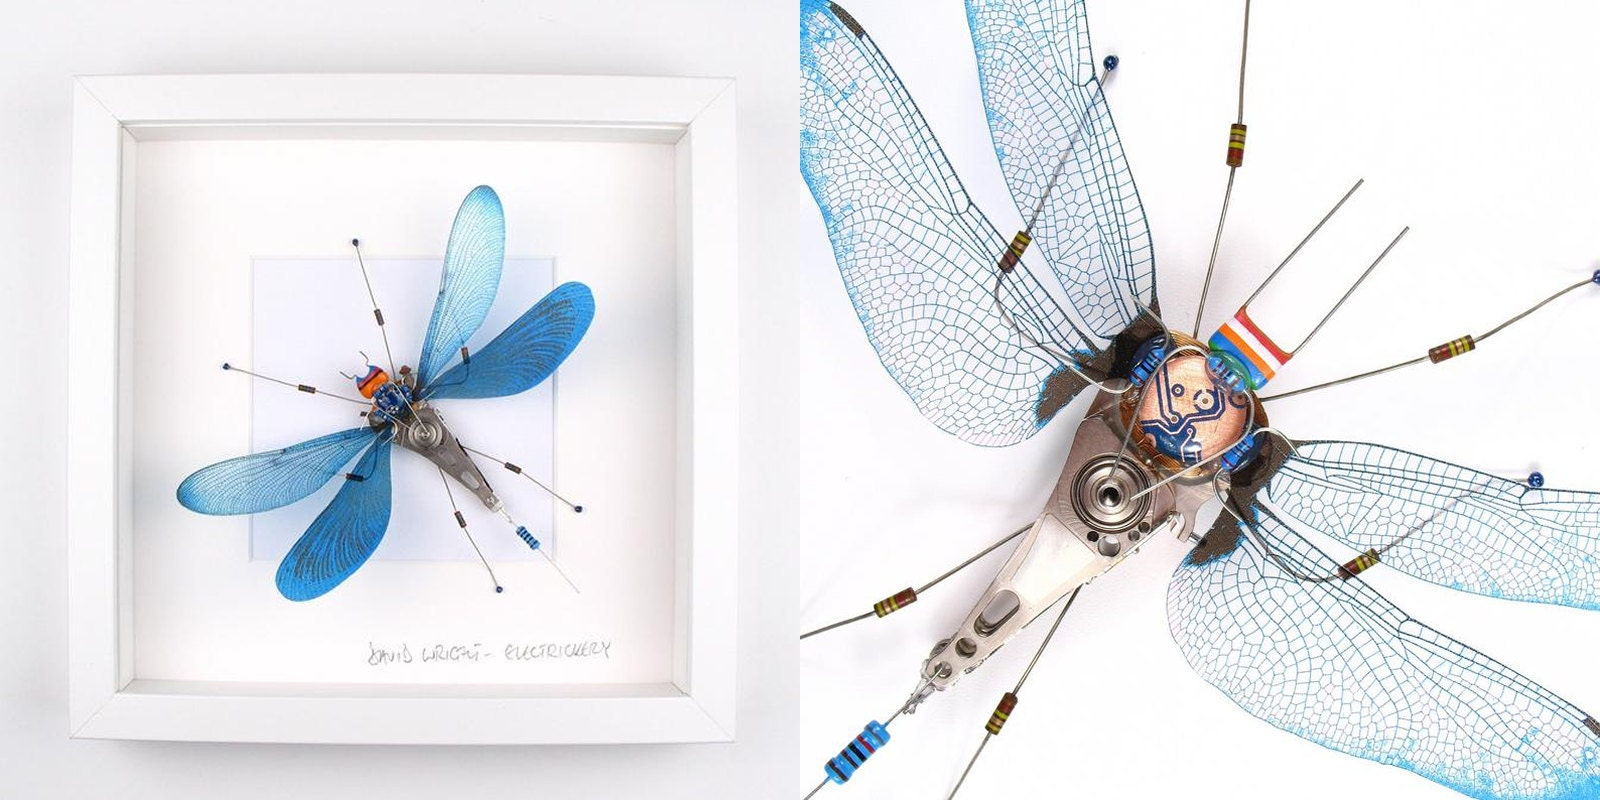 Recycled Computer Art Bugs by David Wright